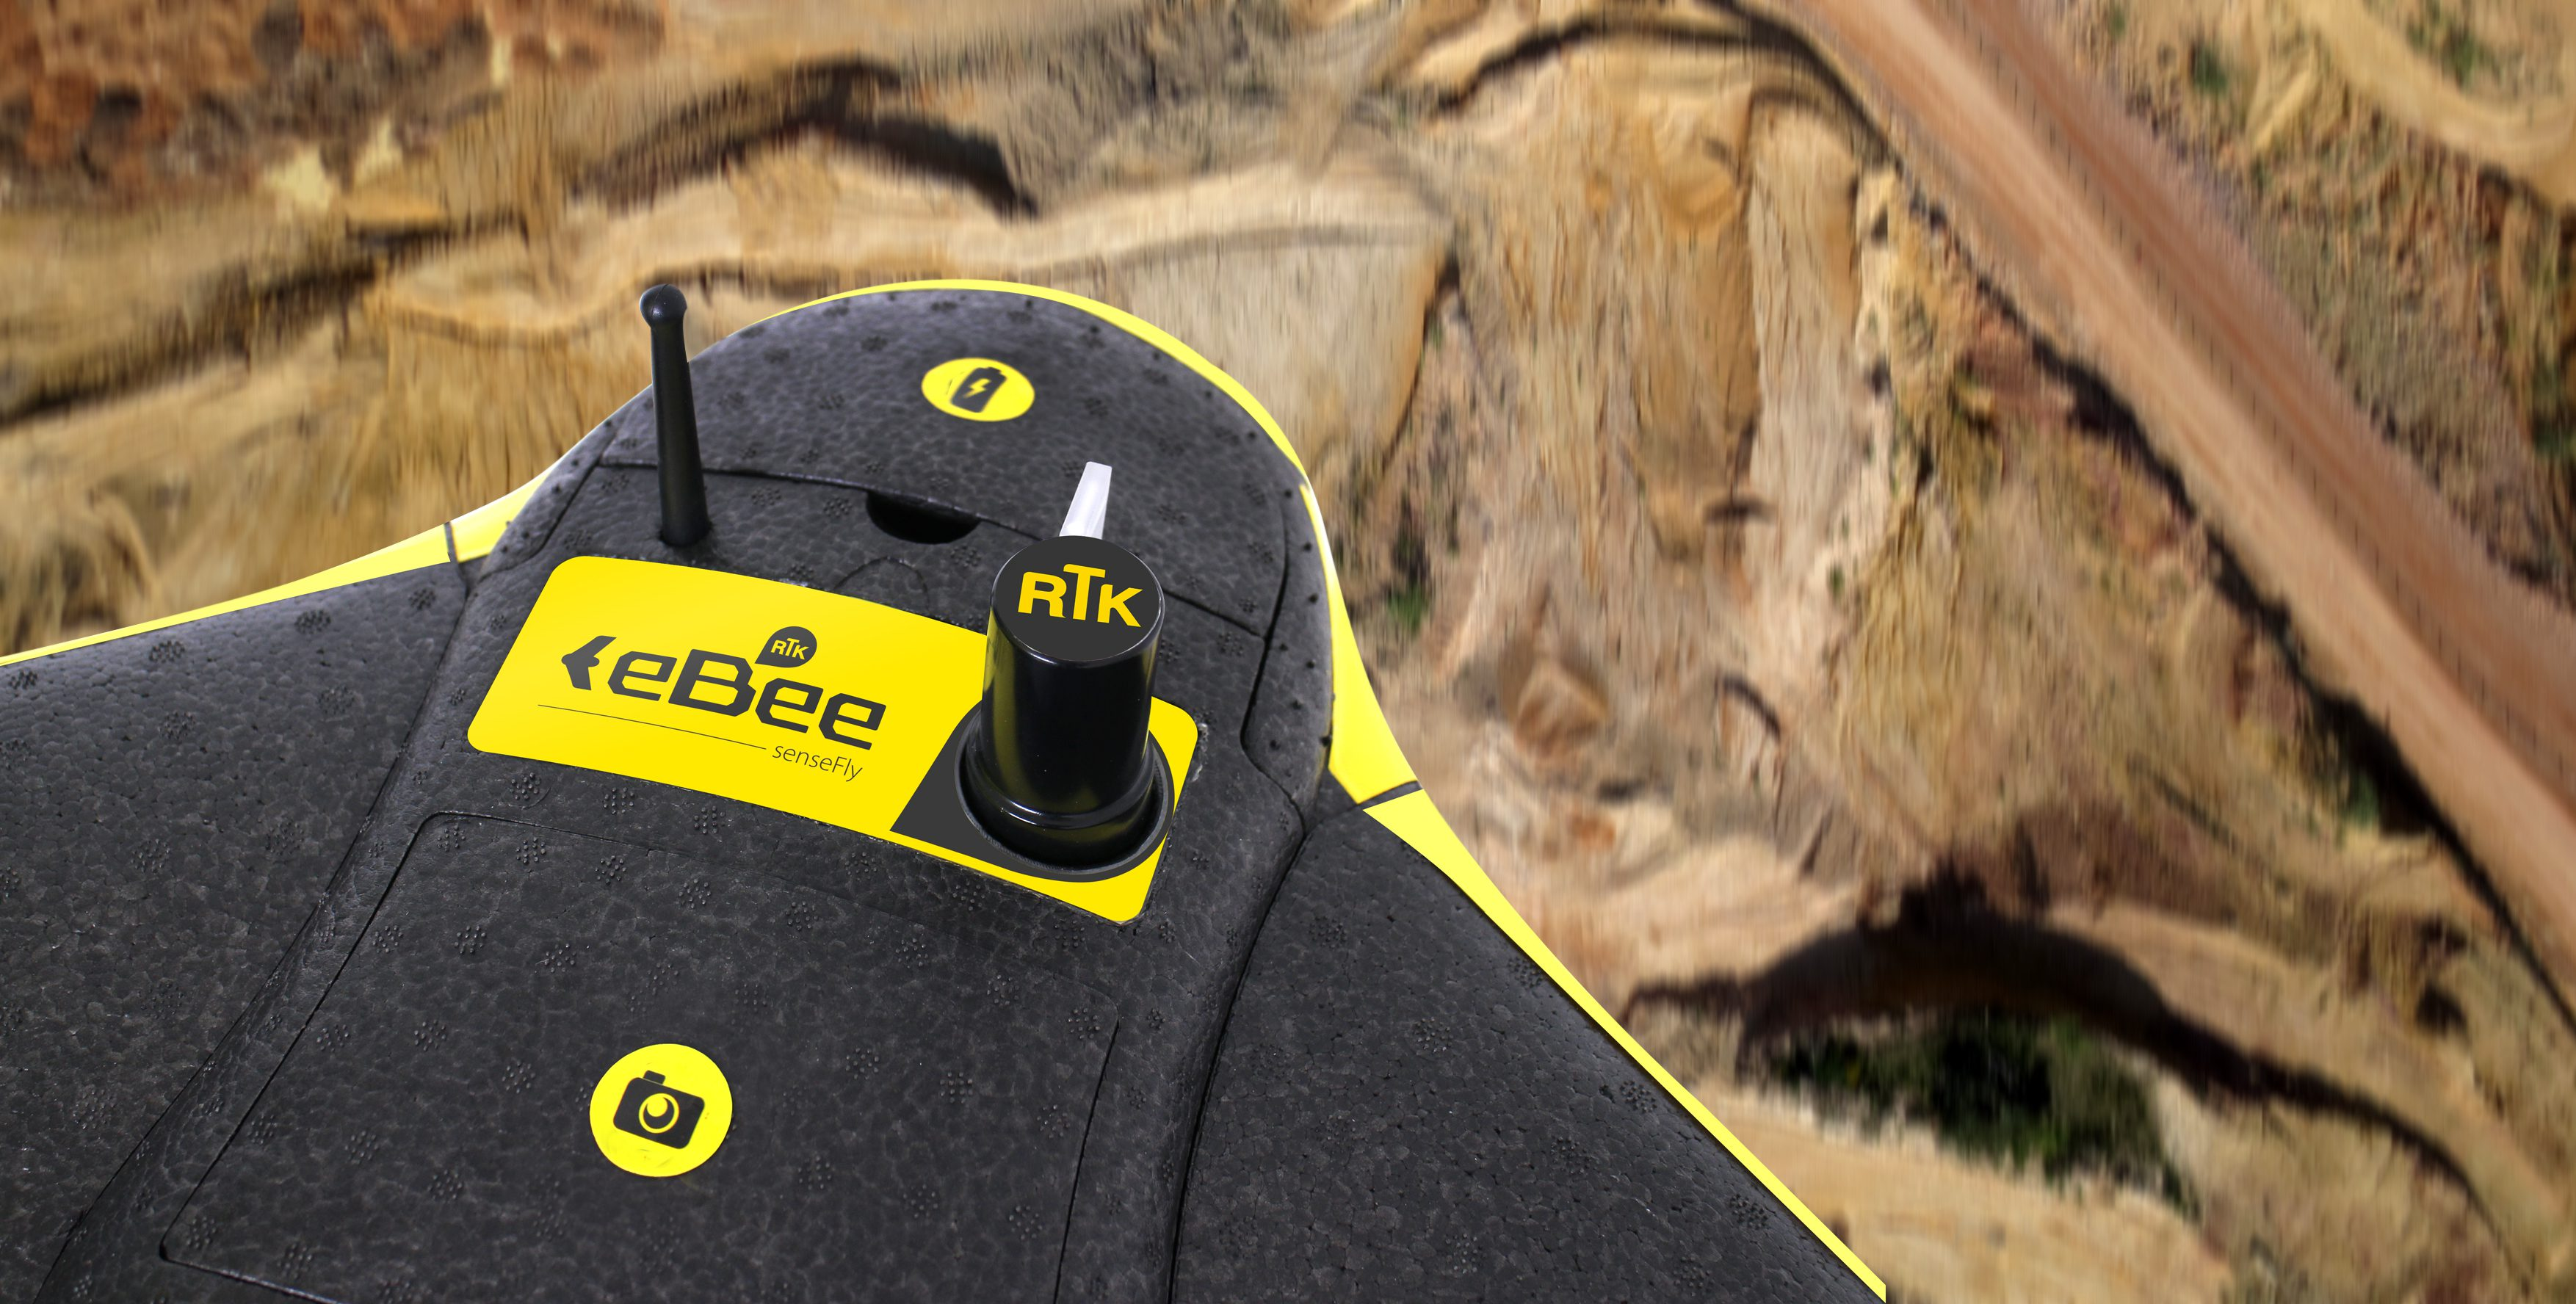 drone ground control with Sensefly Announces Ebee R  Survey Grade Mapping Drone on 369916 Darpa Swarm Attack Drones in addition Sensefly Announces Ebee R  Survey Grade Mapping Drone also Italian Af Unveils New T 344 Trainer besides bined Aerial Target Service Cats likewise Aegistg.